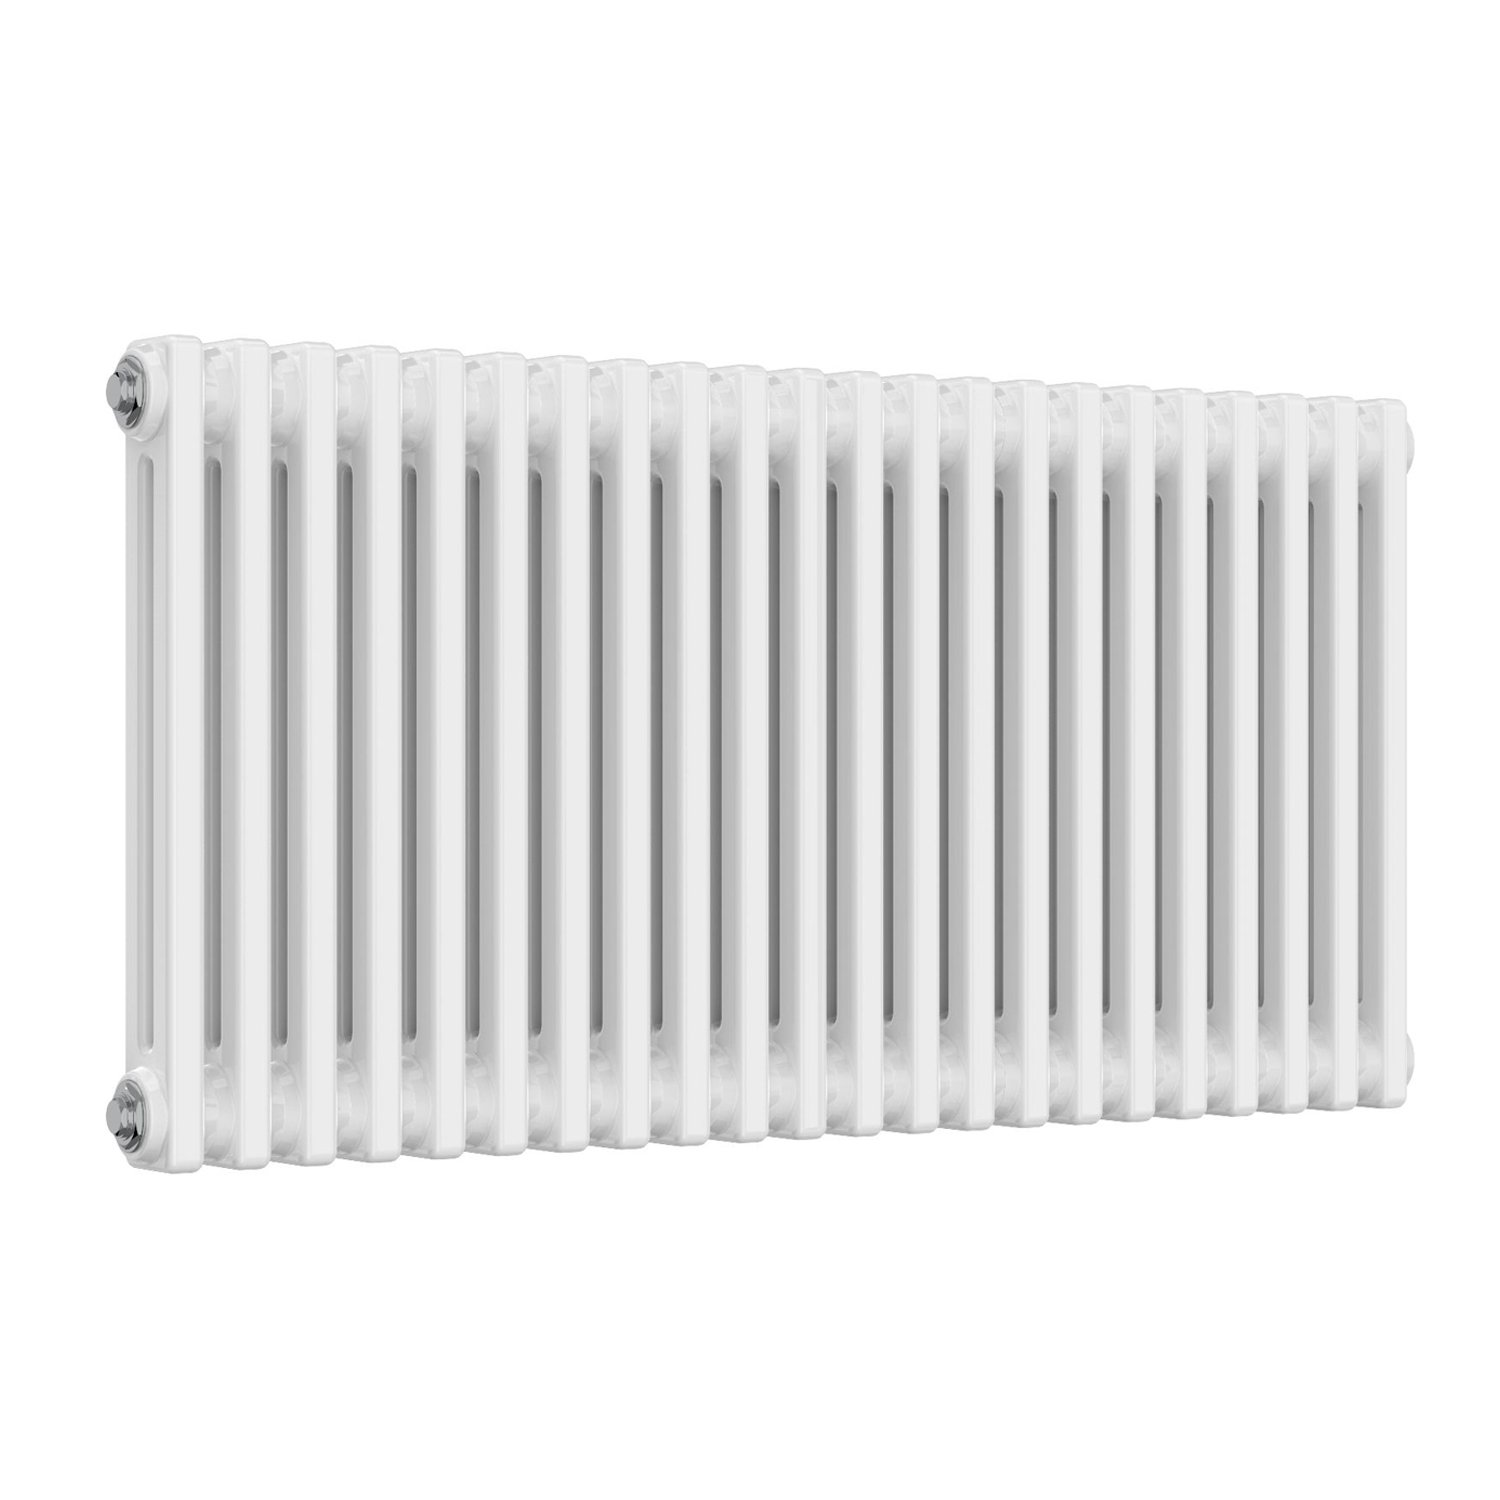 Stelrad Radical Radiator 600mm H x 1800mm W Double Convector 10mm Straight TRV-0